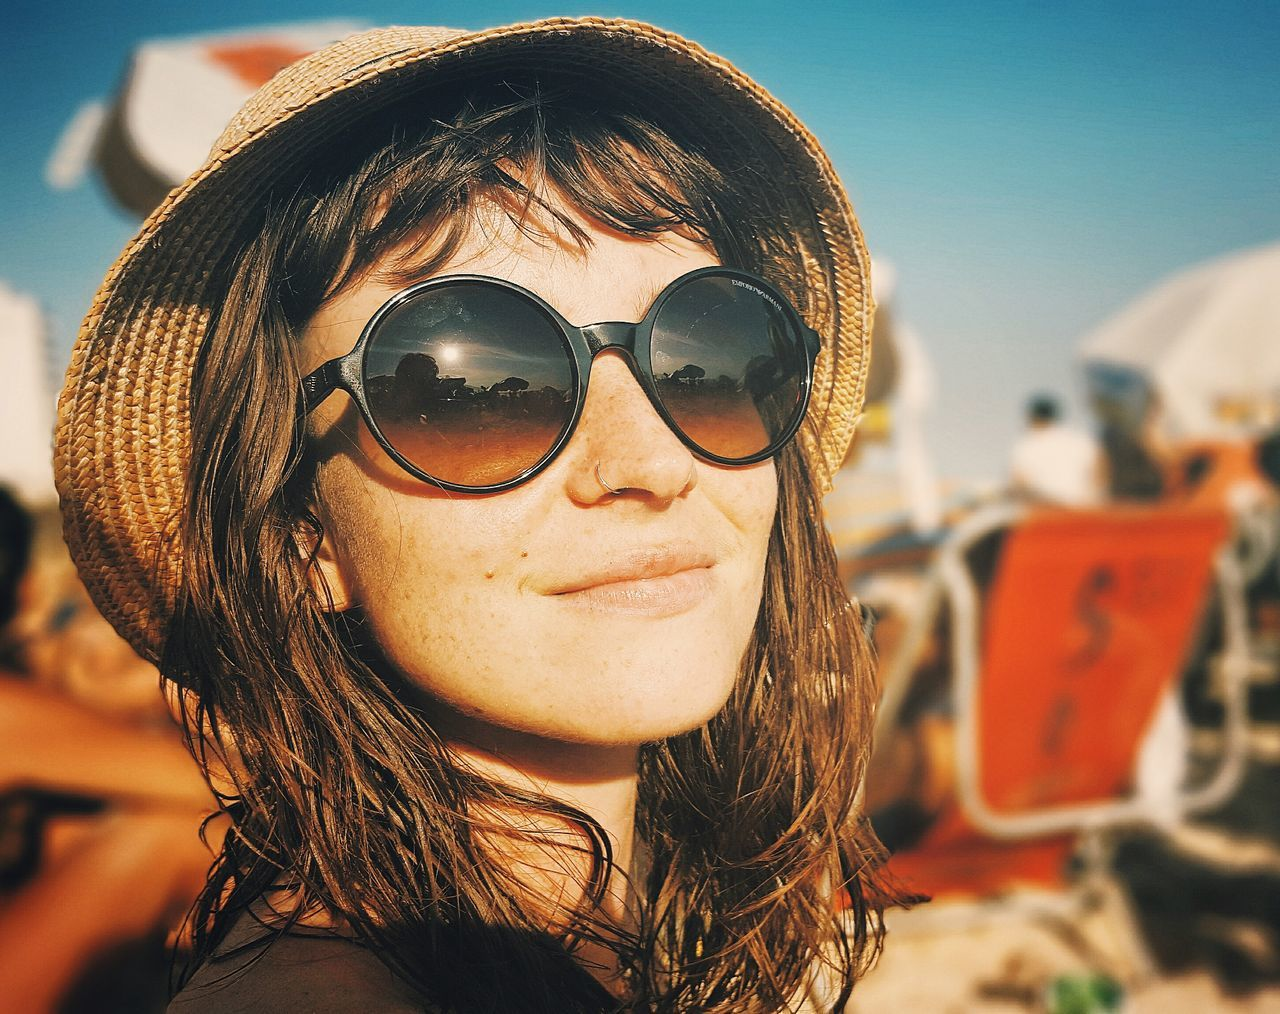 Fear And Loathing in Ipanema Sunglasses Portrait Looking At Camera Headshot Outdoors Women Fashion Sunlight Lifestyles One Woman Only One Person Beach Photography Ipanema Beach Rio De Janeiro